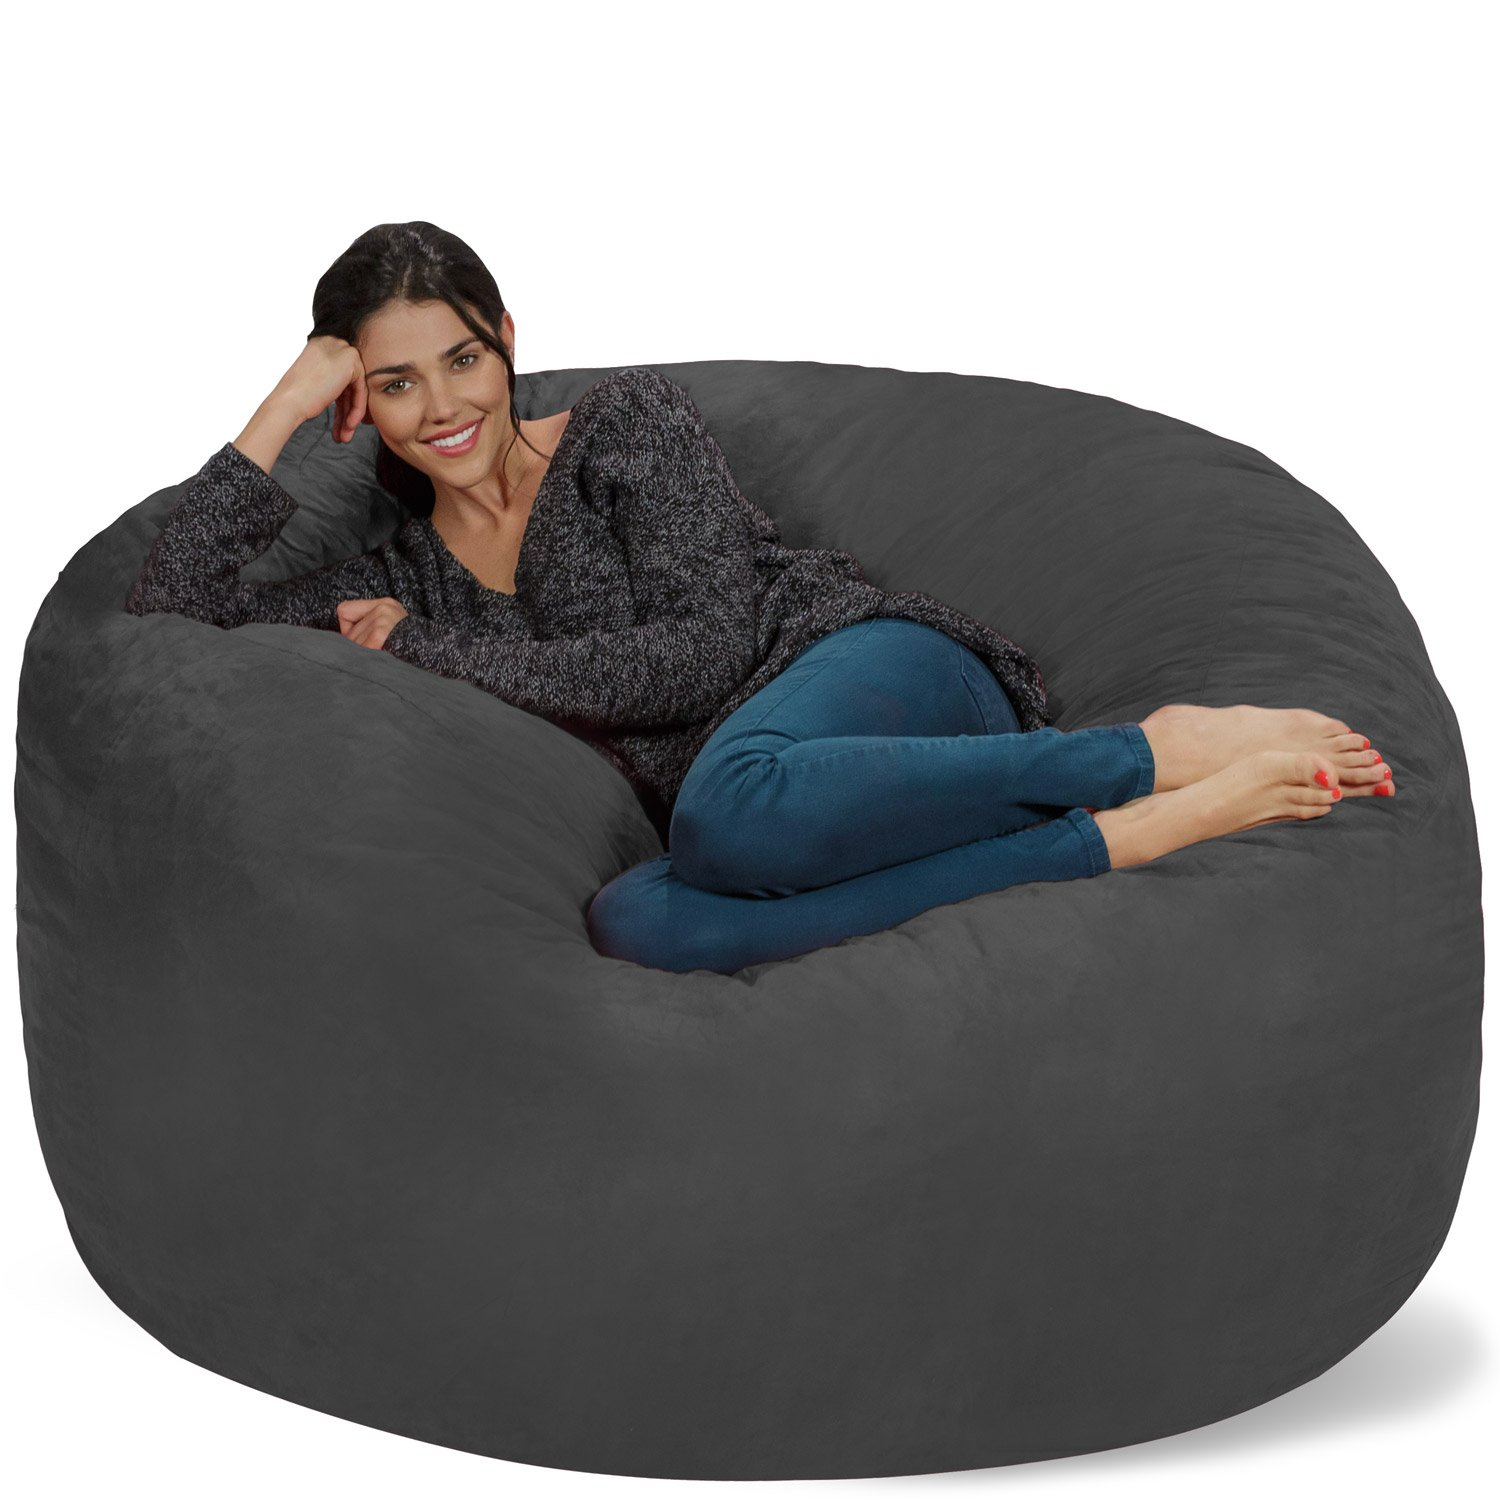 How To Choose Best Bean Bag Chair